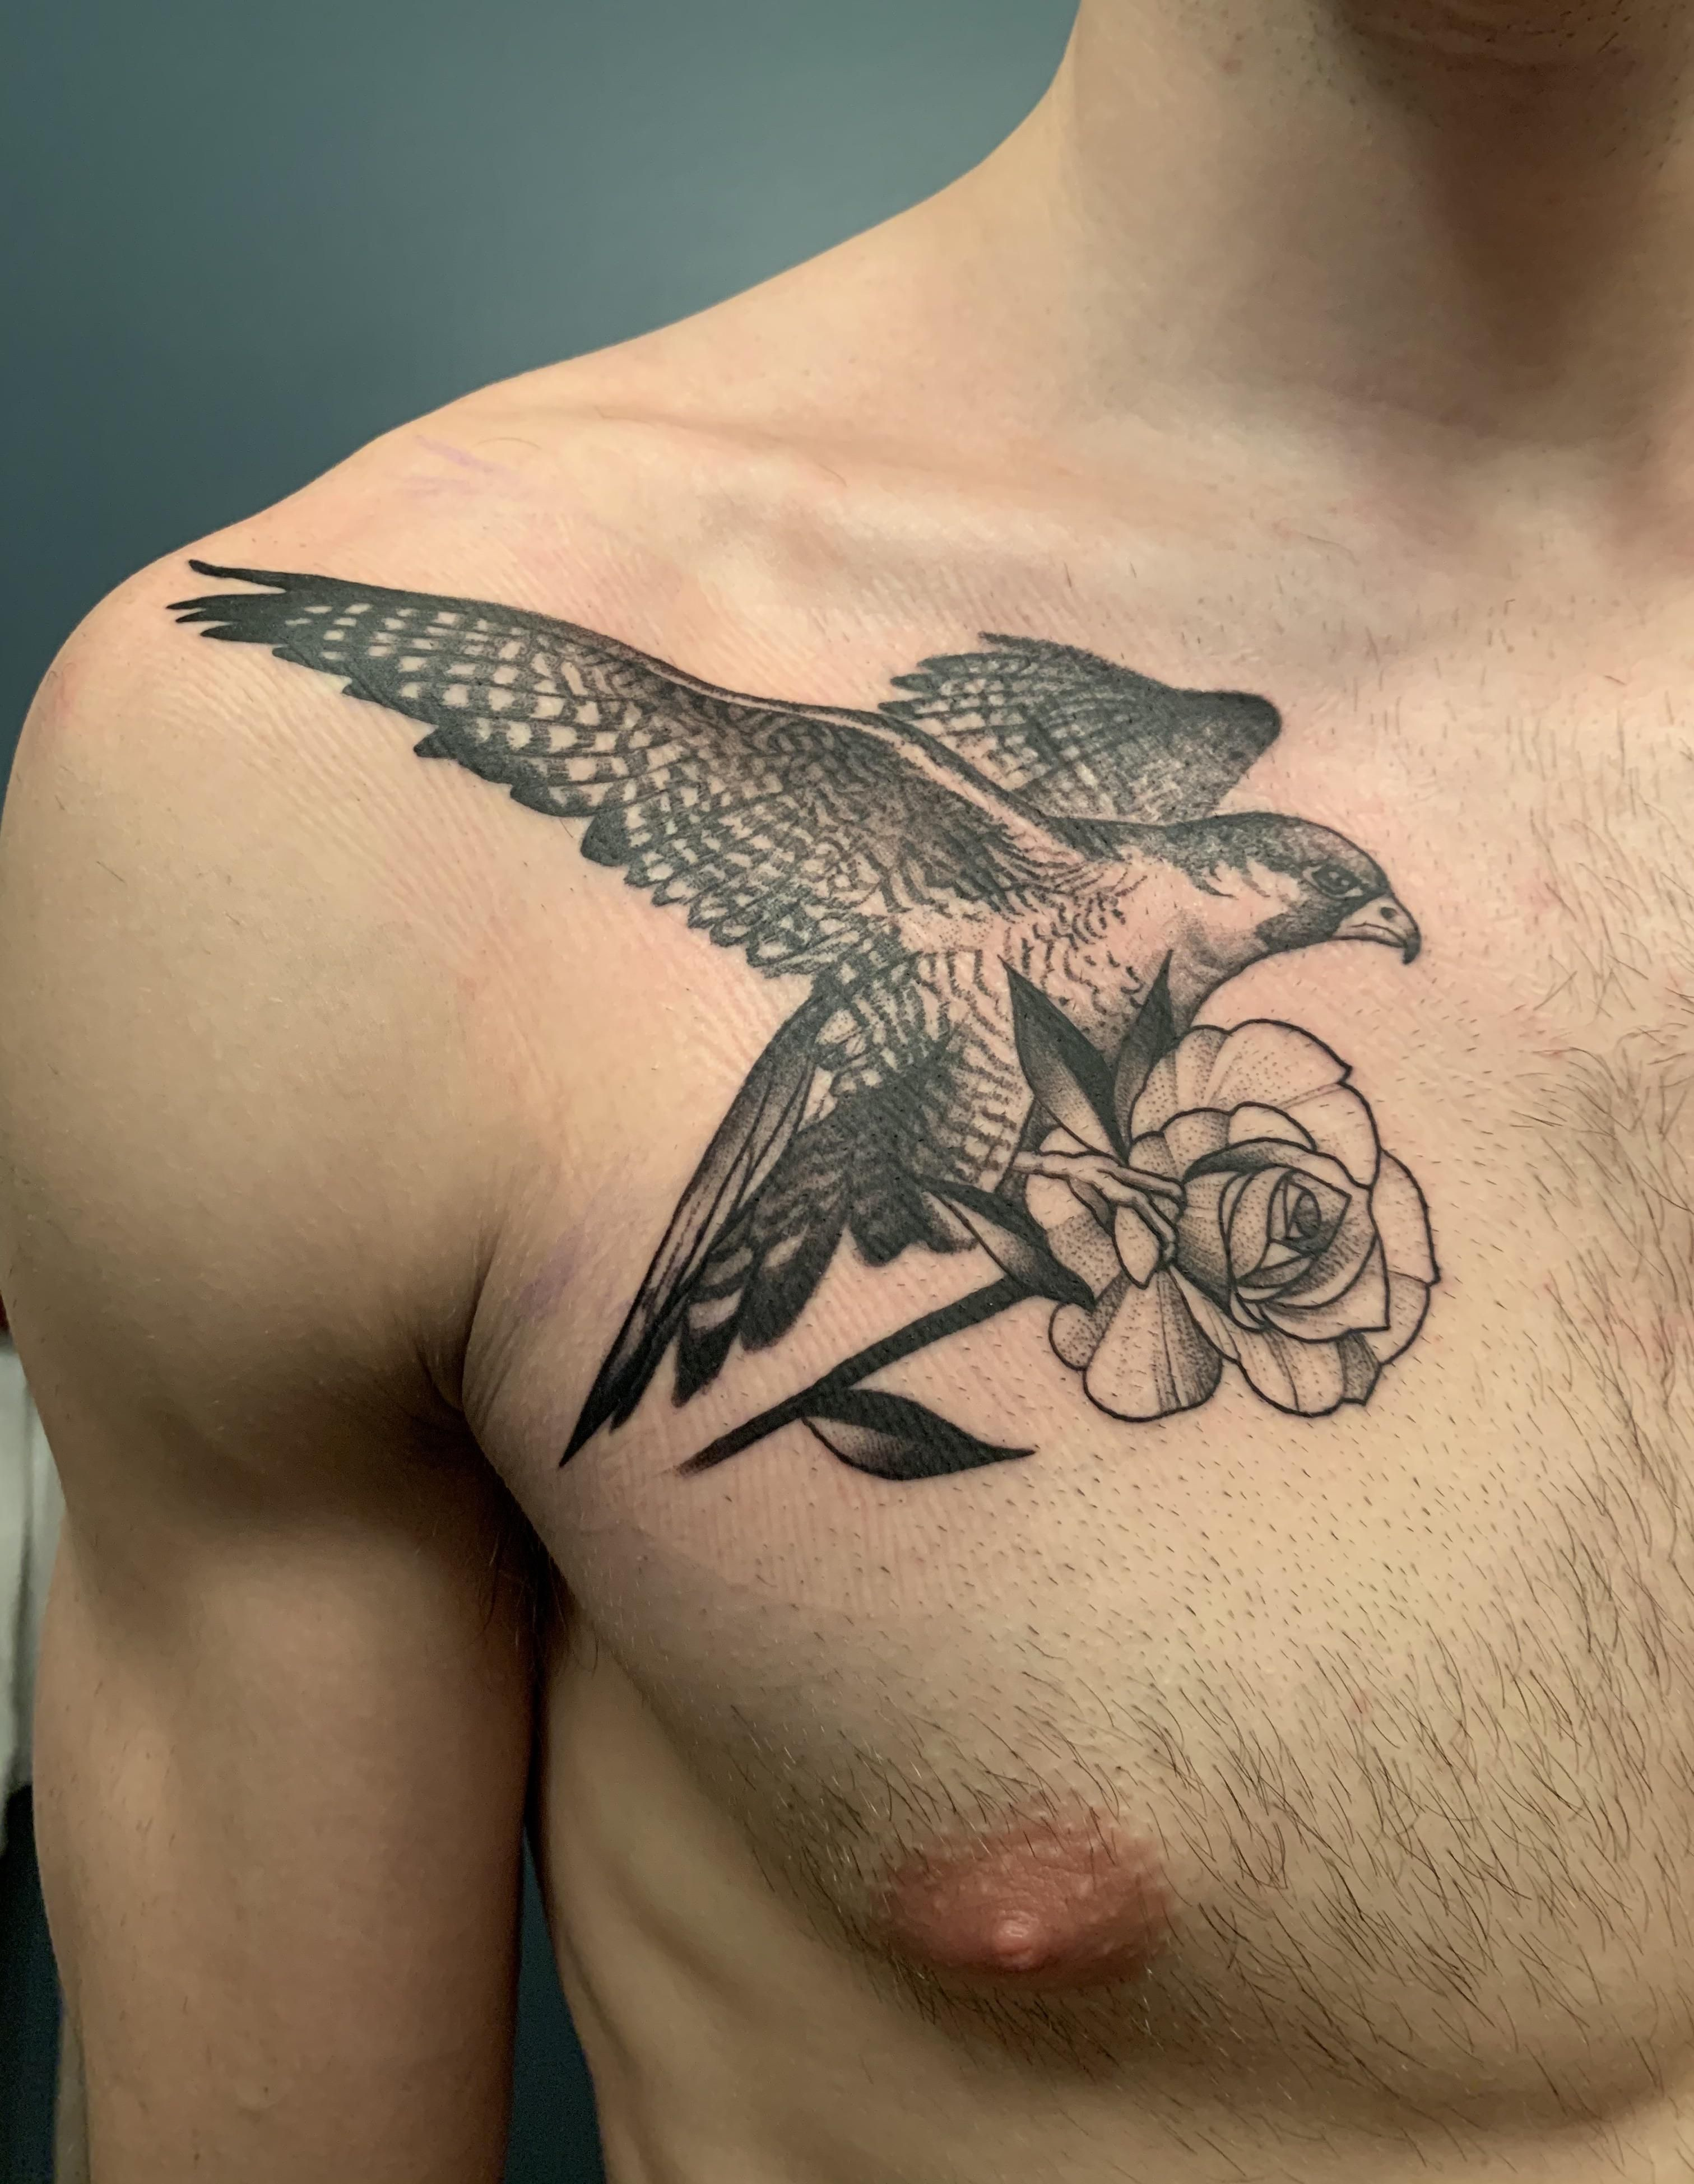 Peregrine Falcon With Rose By Joe Perreze At The Silver Key In Davenport Ia In 2020 Falcon Tattoo Tattoos Side Tattoos